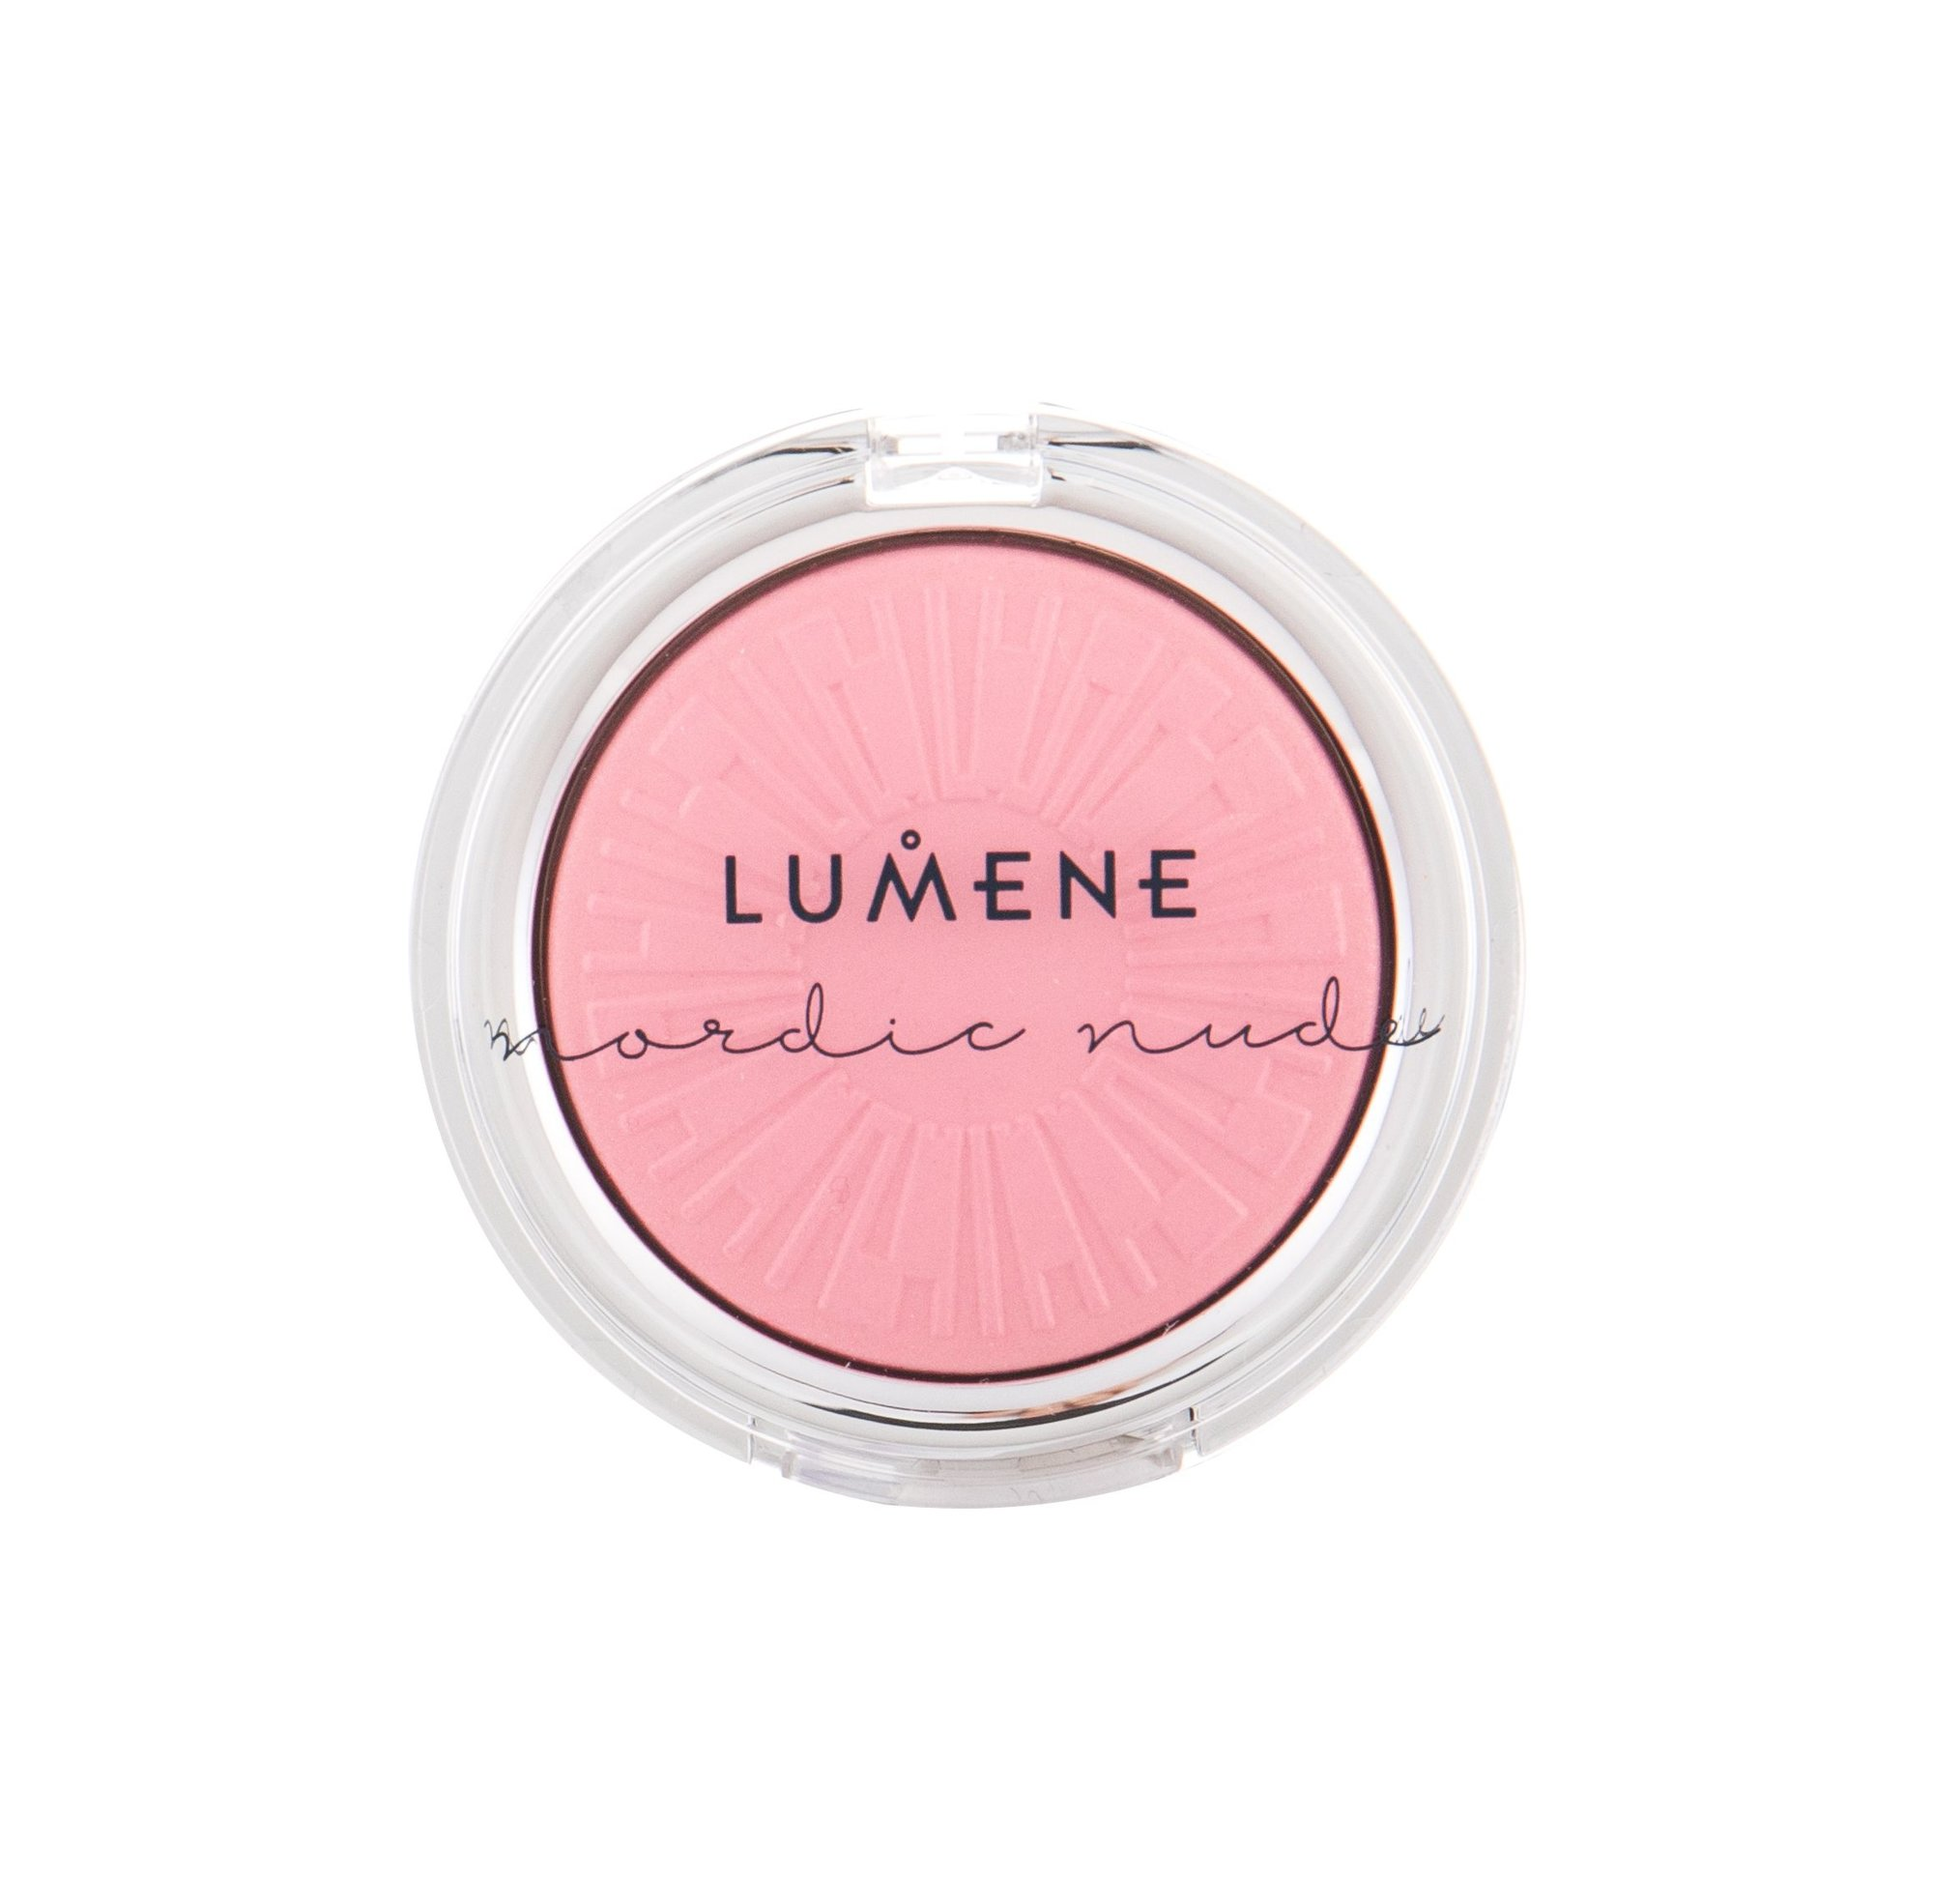 Lumene Nordic Nude Blush 4ml 2